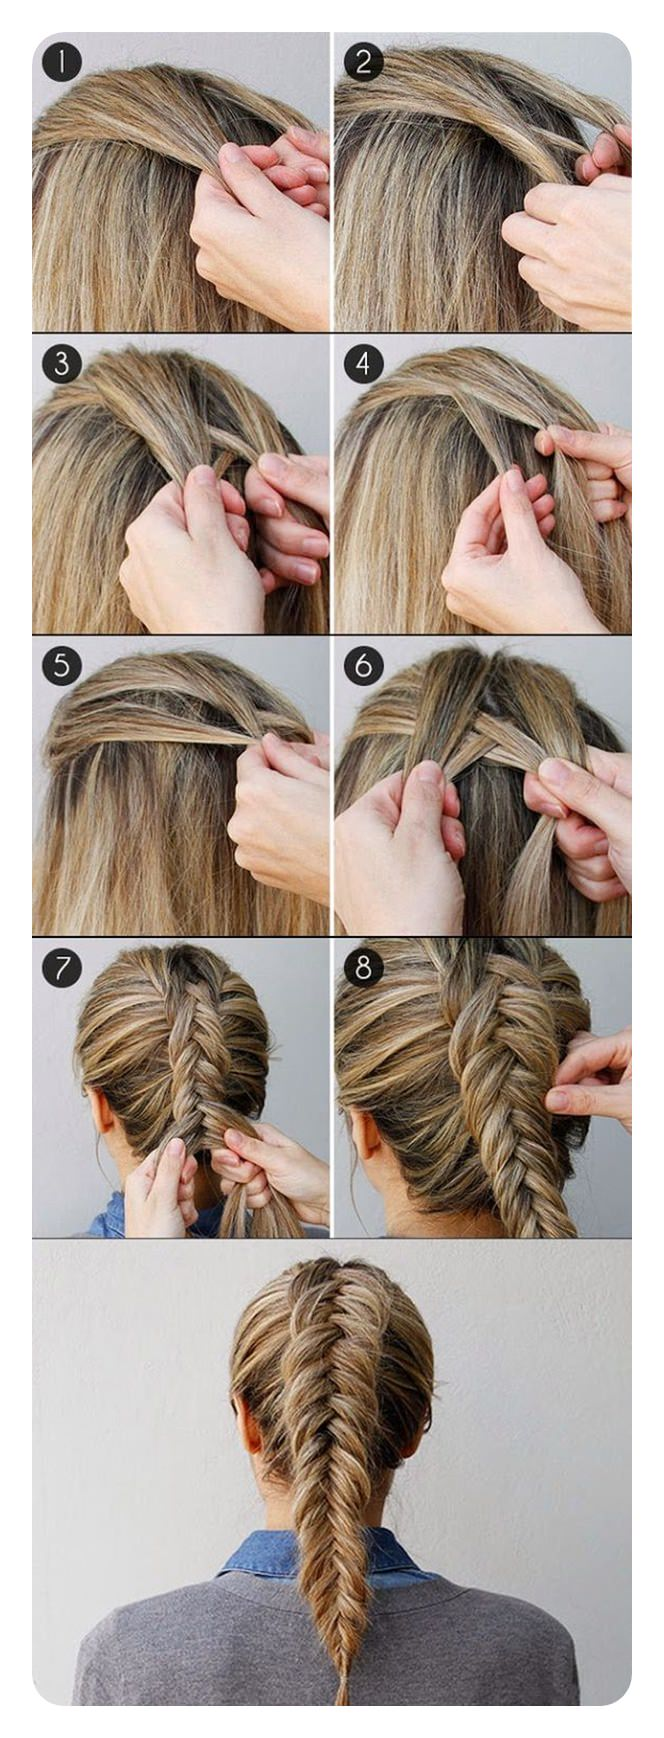 Fishtail Braid A 104 Of Hot And Happening Hairstyles For This Year